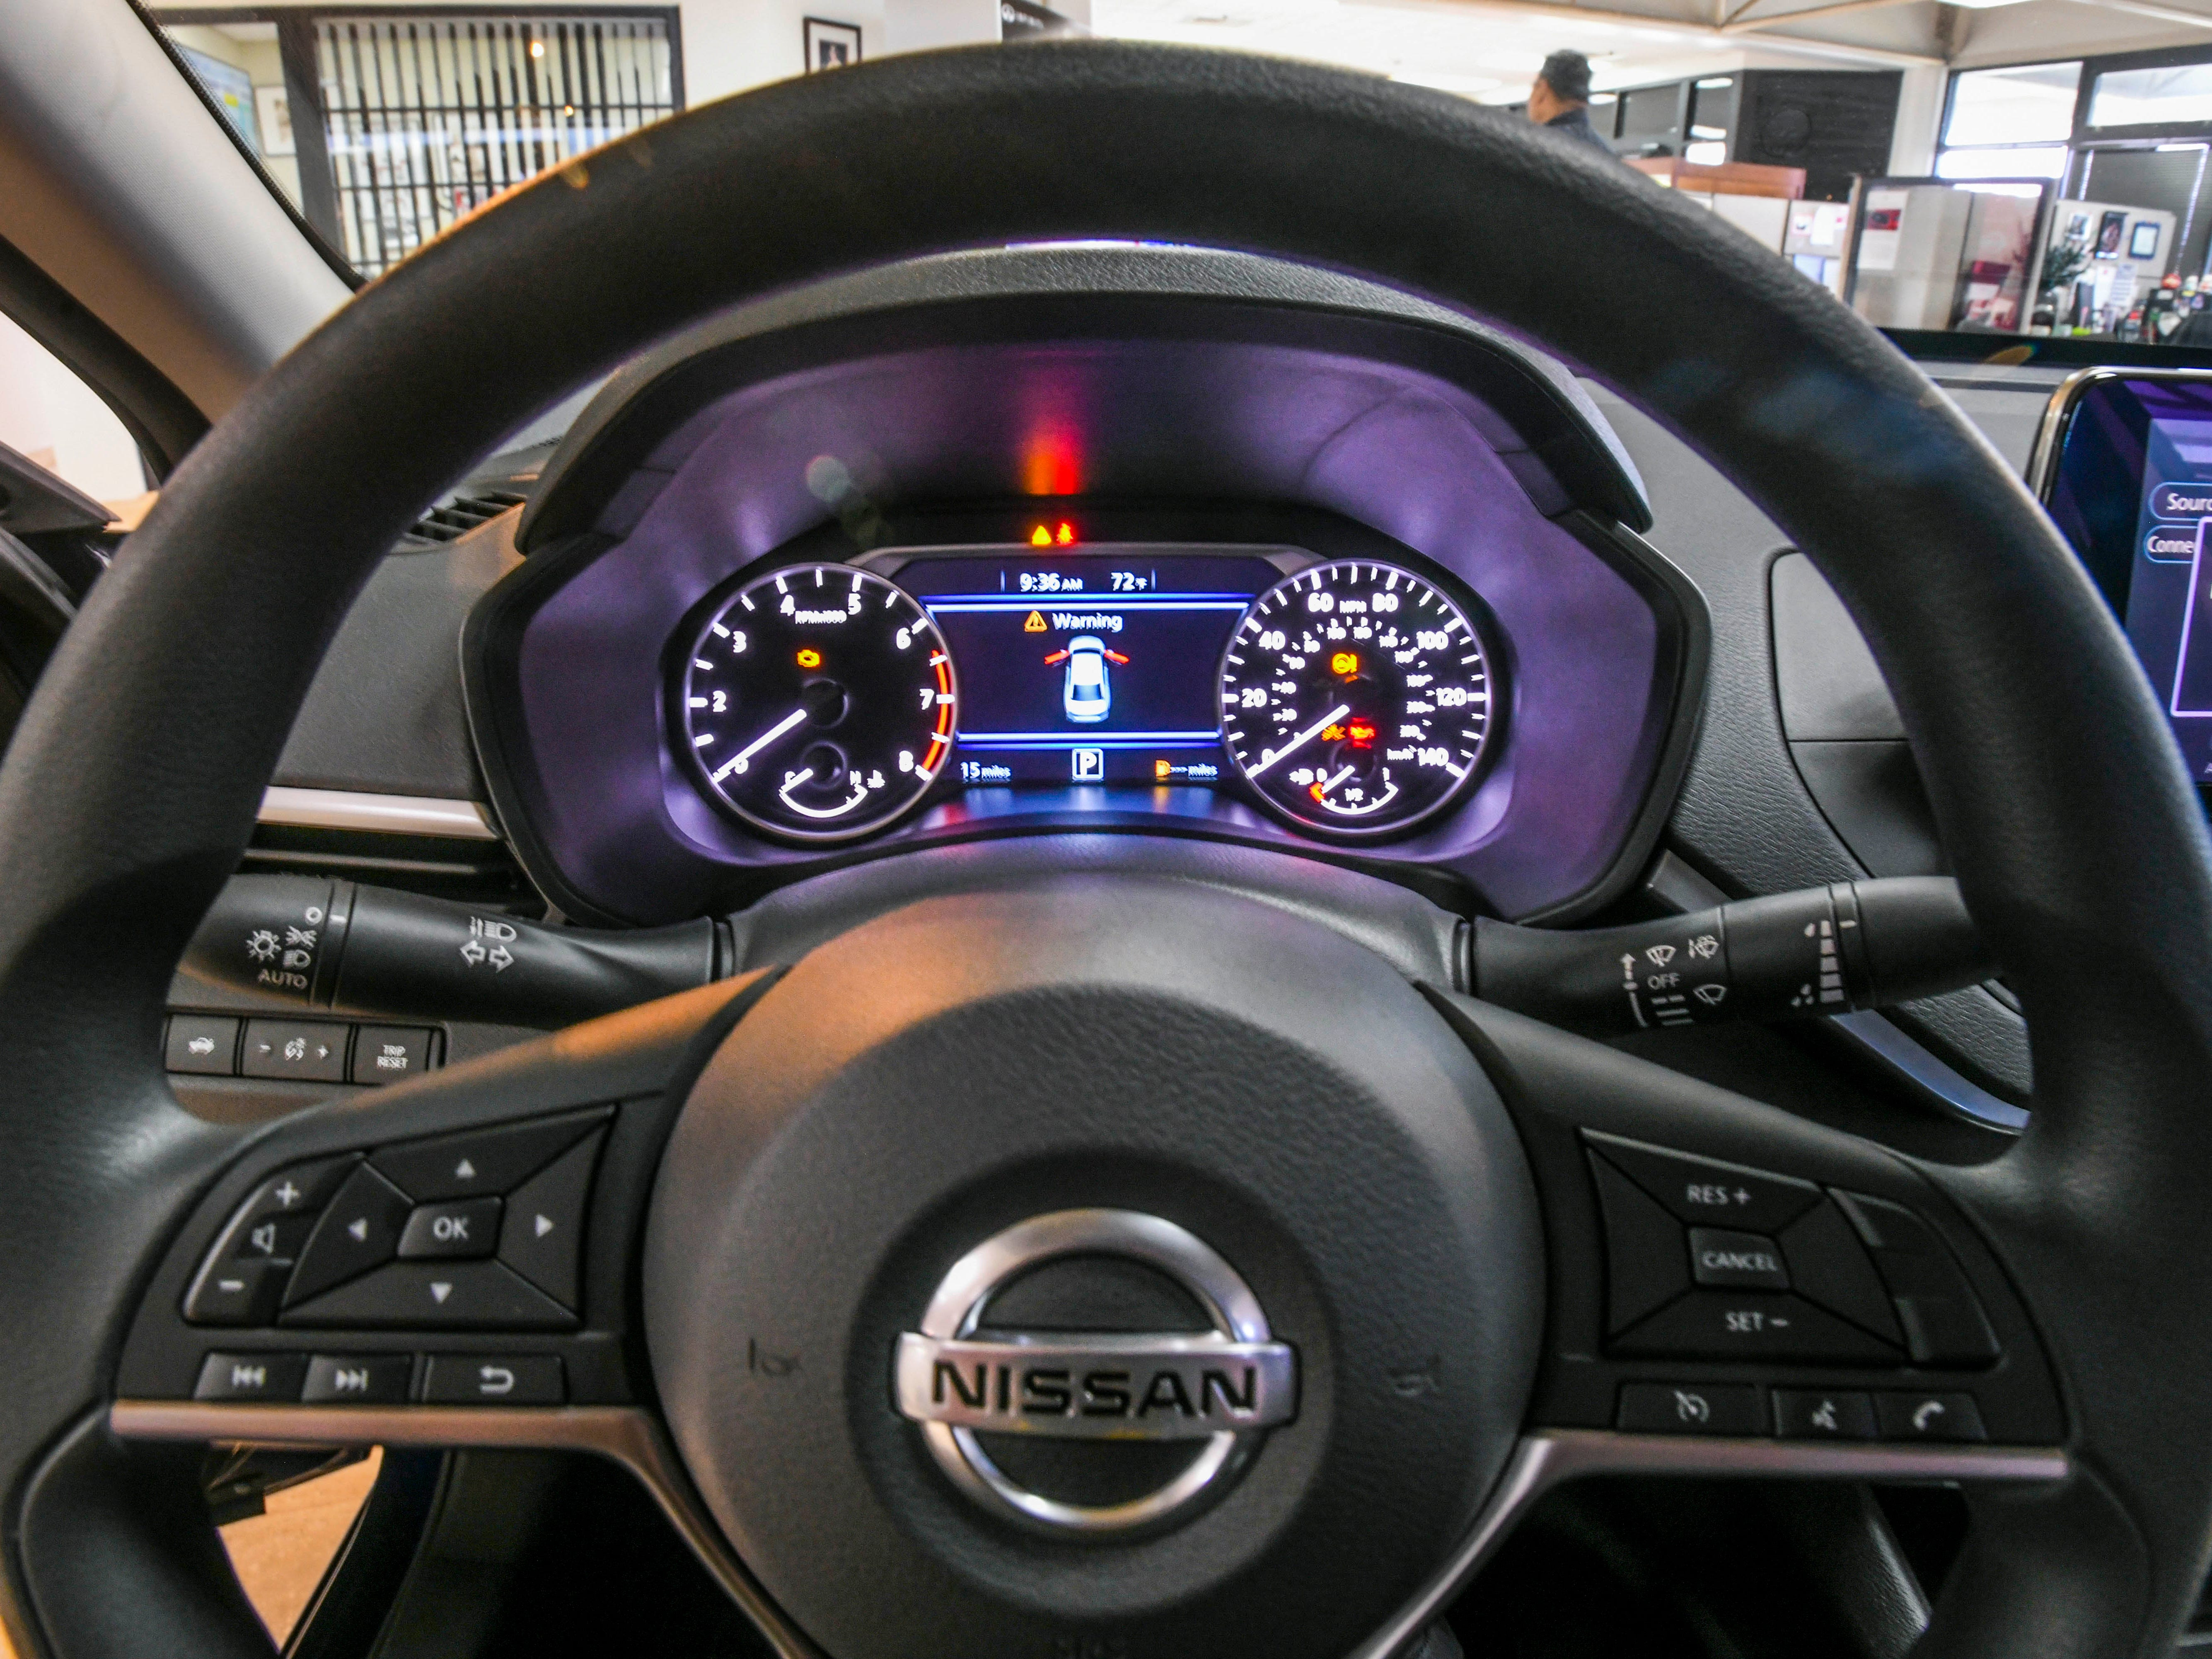 The driver's view of controls as seen on a redesigned 2019 Nissan Altima at the Nissan Guam showroom in upper Tumon on Friday, Jan. 18, 2019.